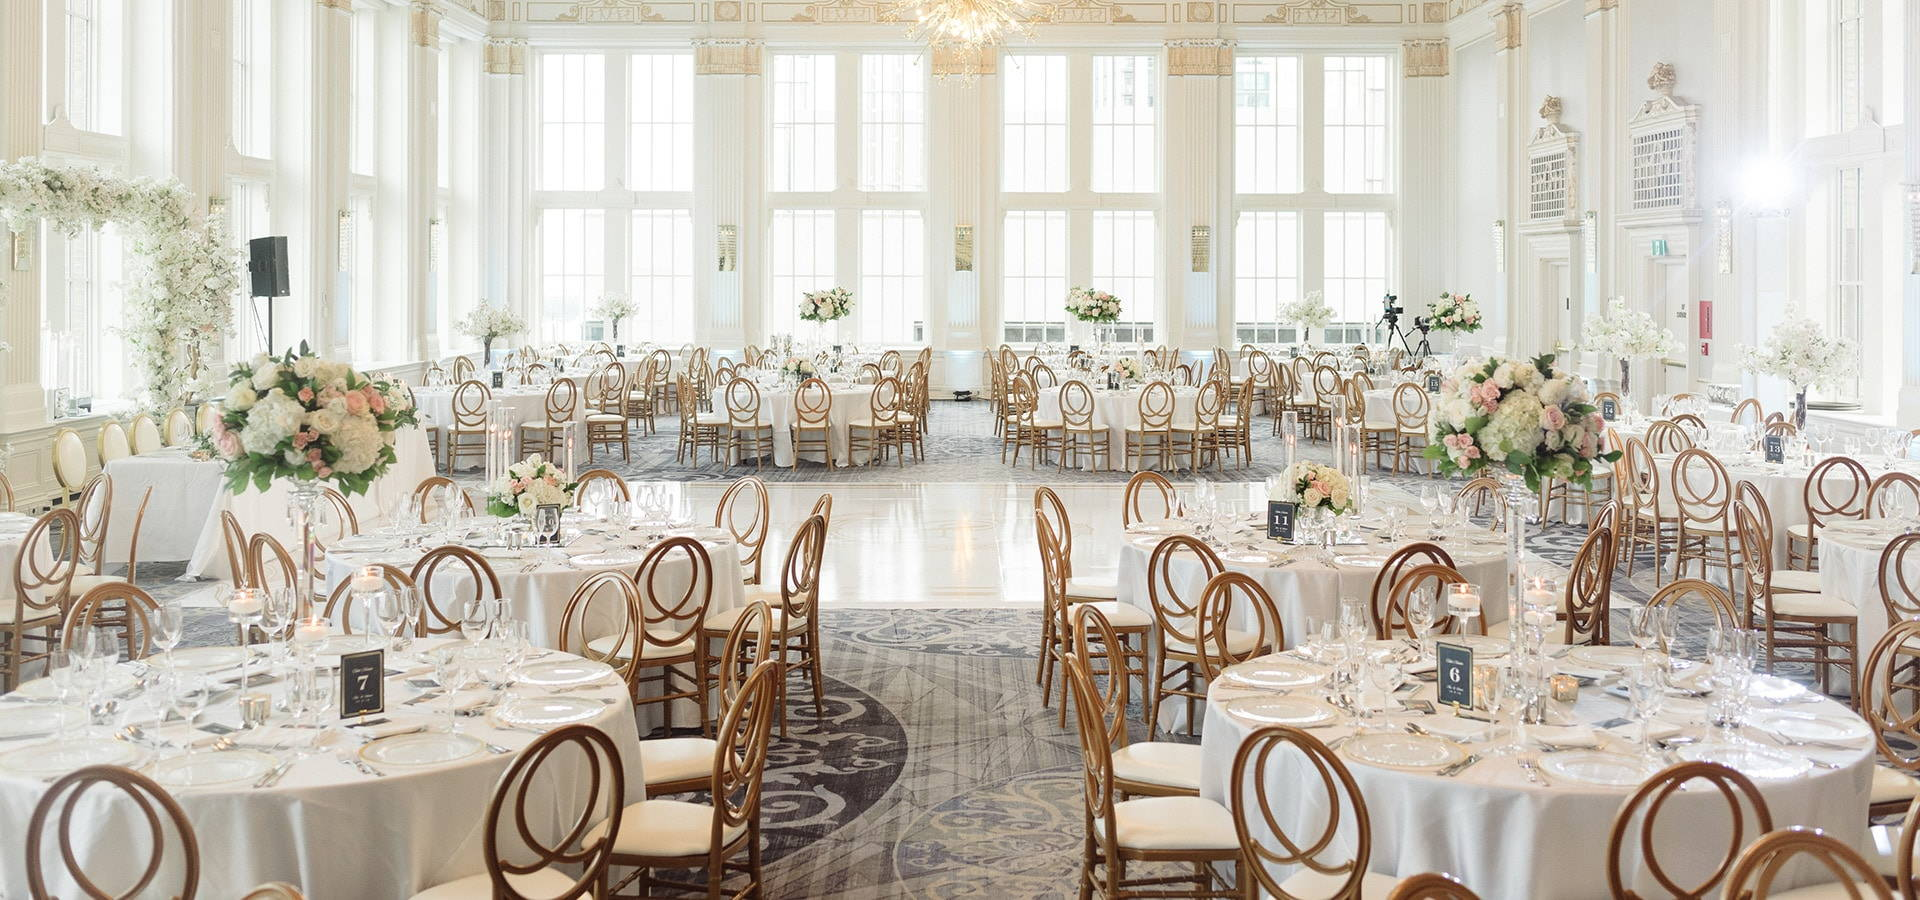 Hero image for 5 Helpful Wedding Planning Tips for Non-Planners